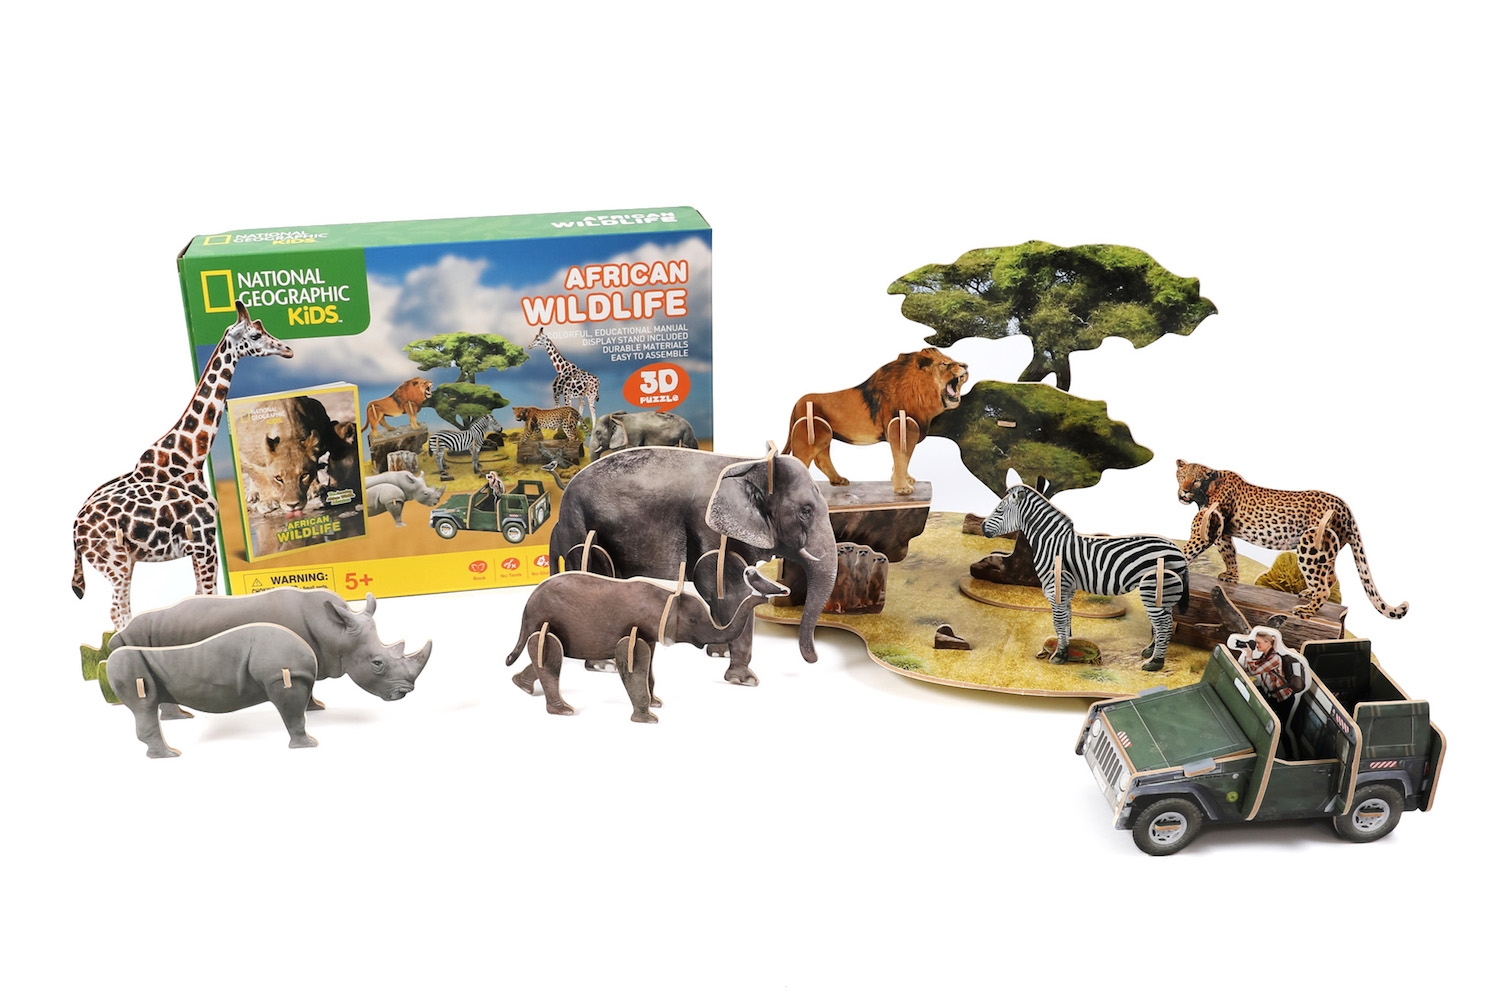 Alternate National Geographic African Wildlife 3D Puzzle image 0